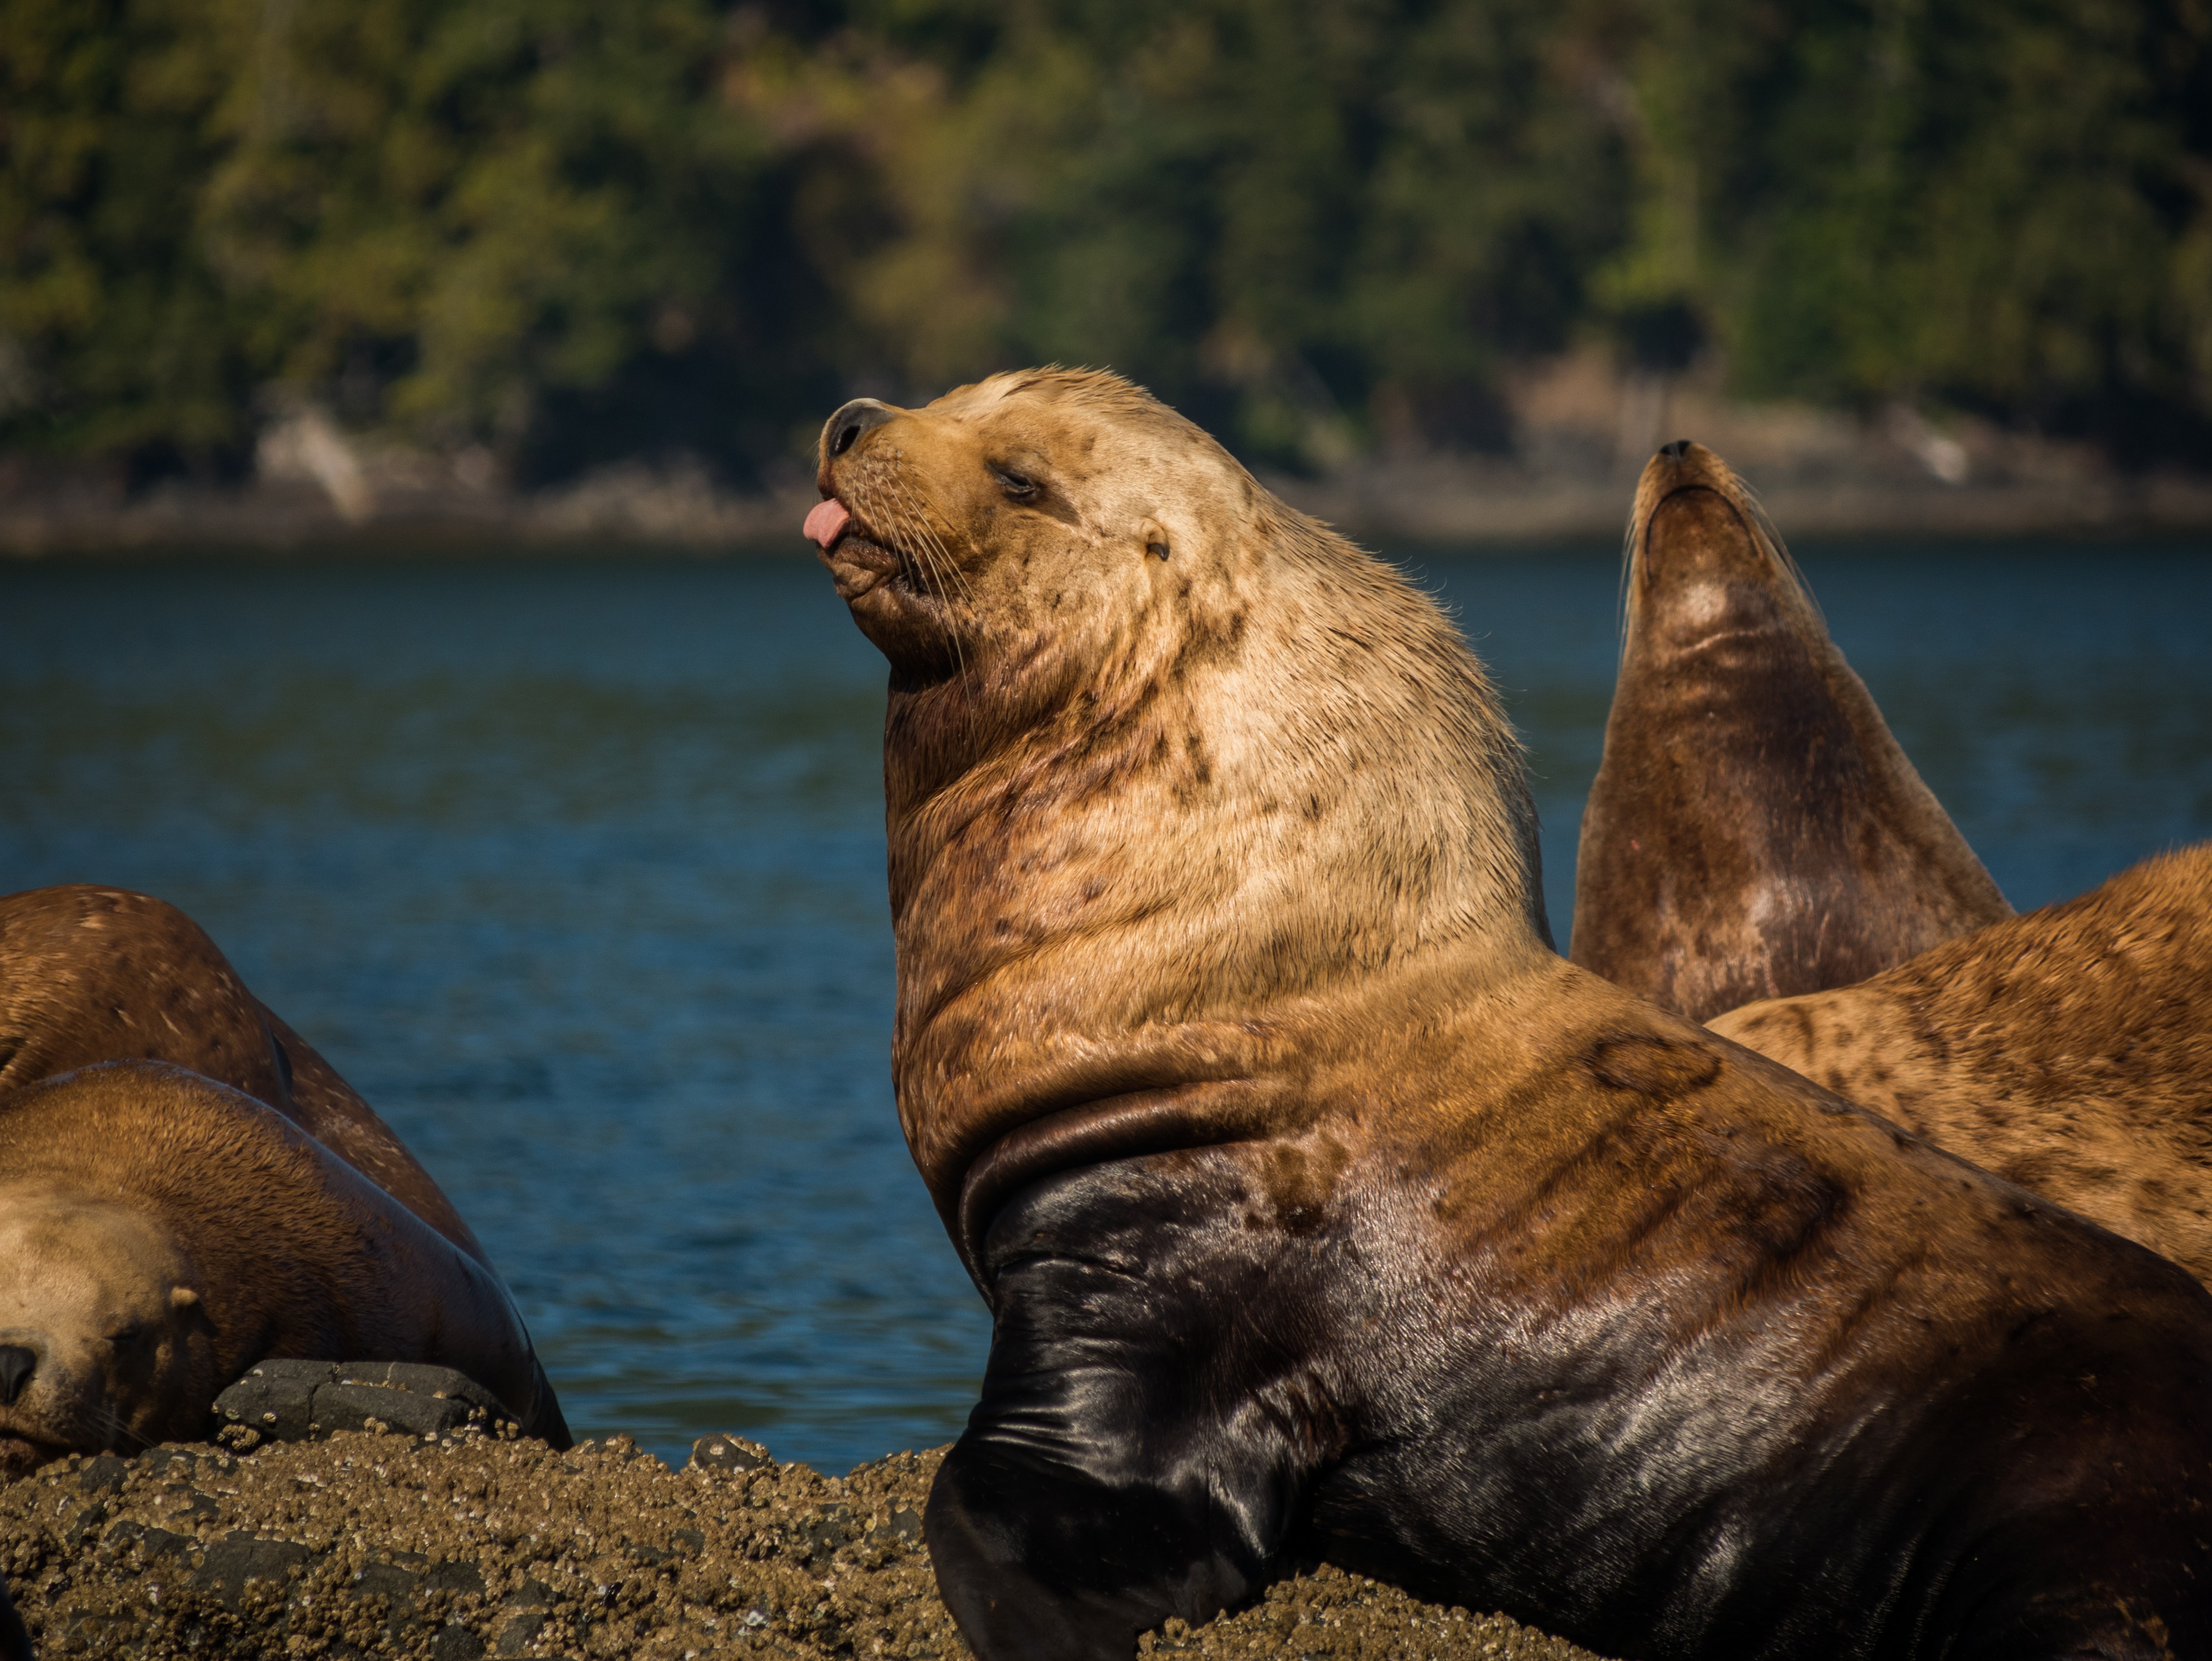 group of sea lions near body of water